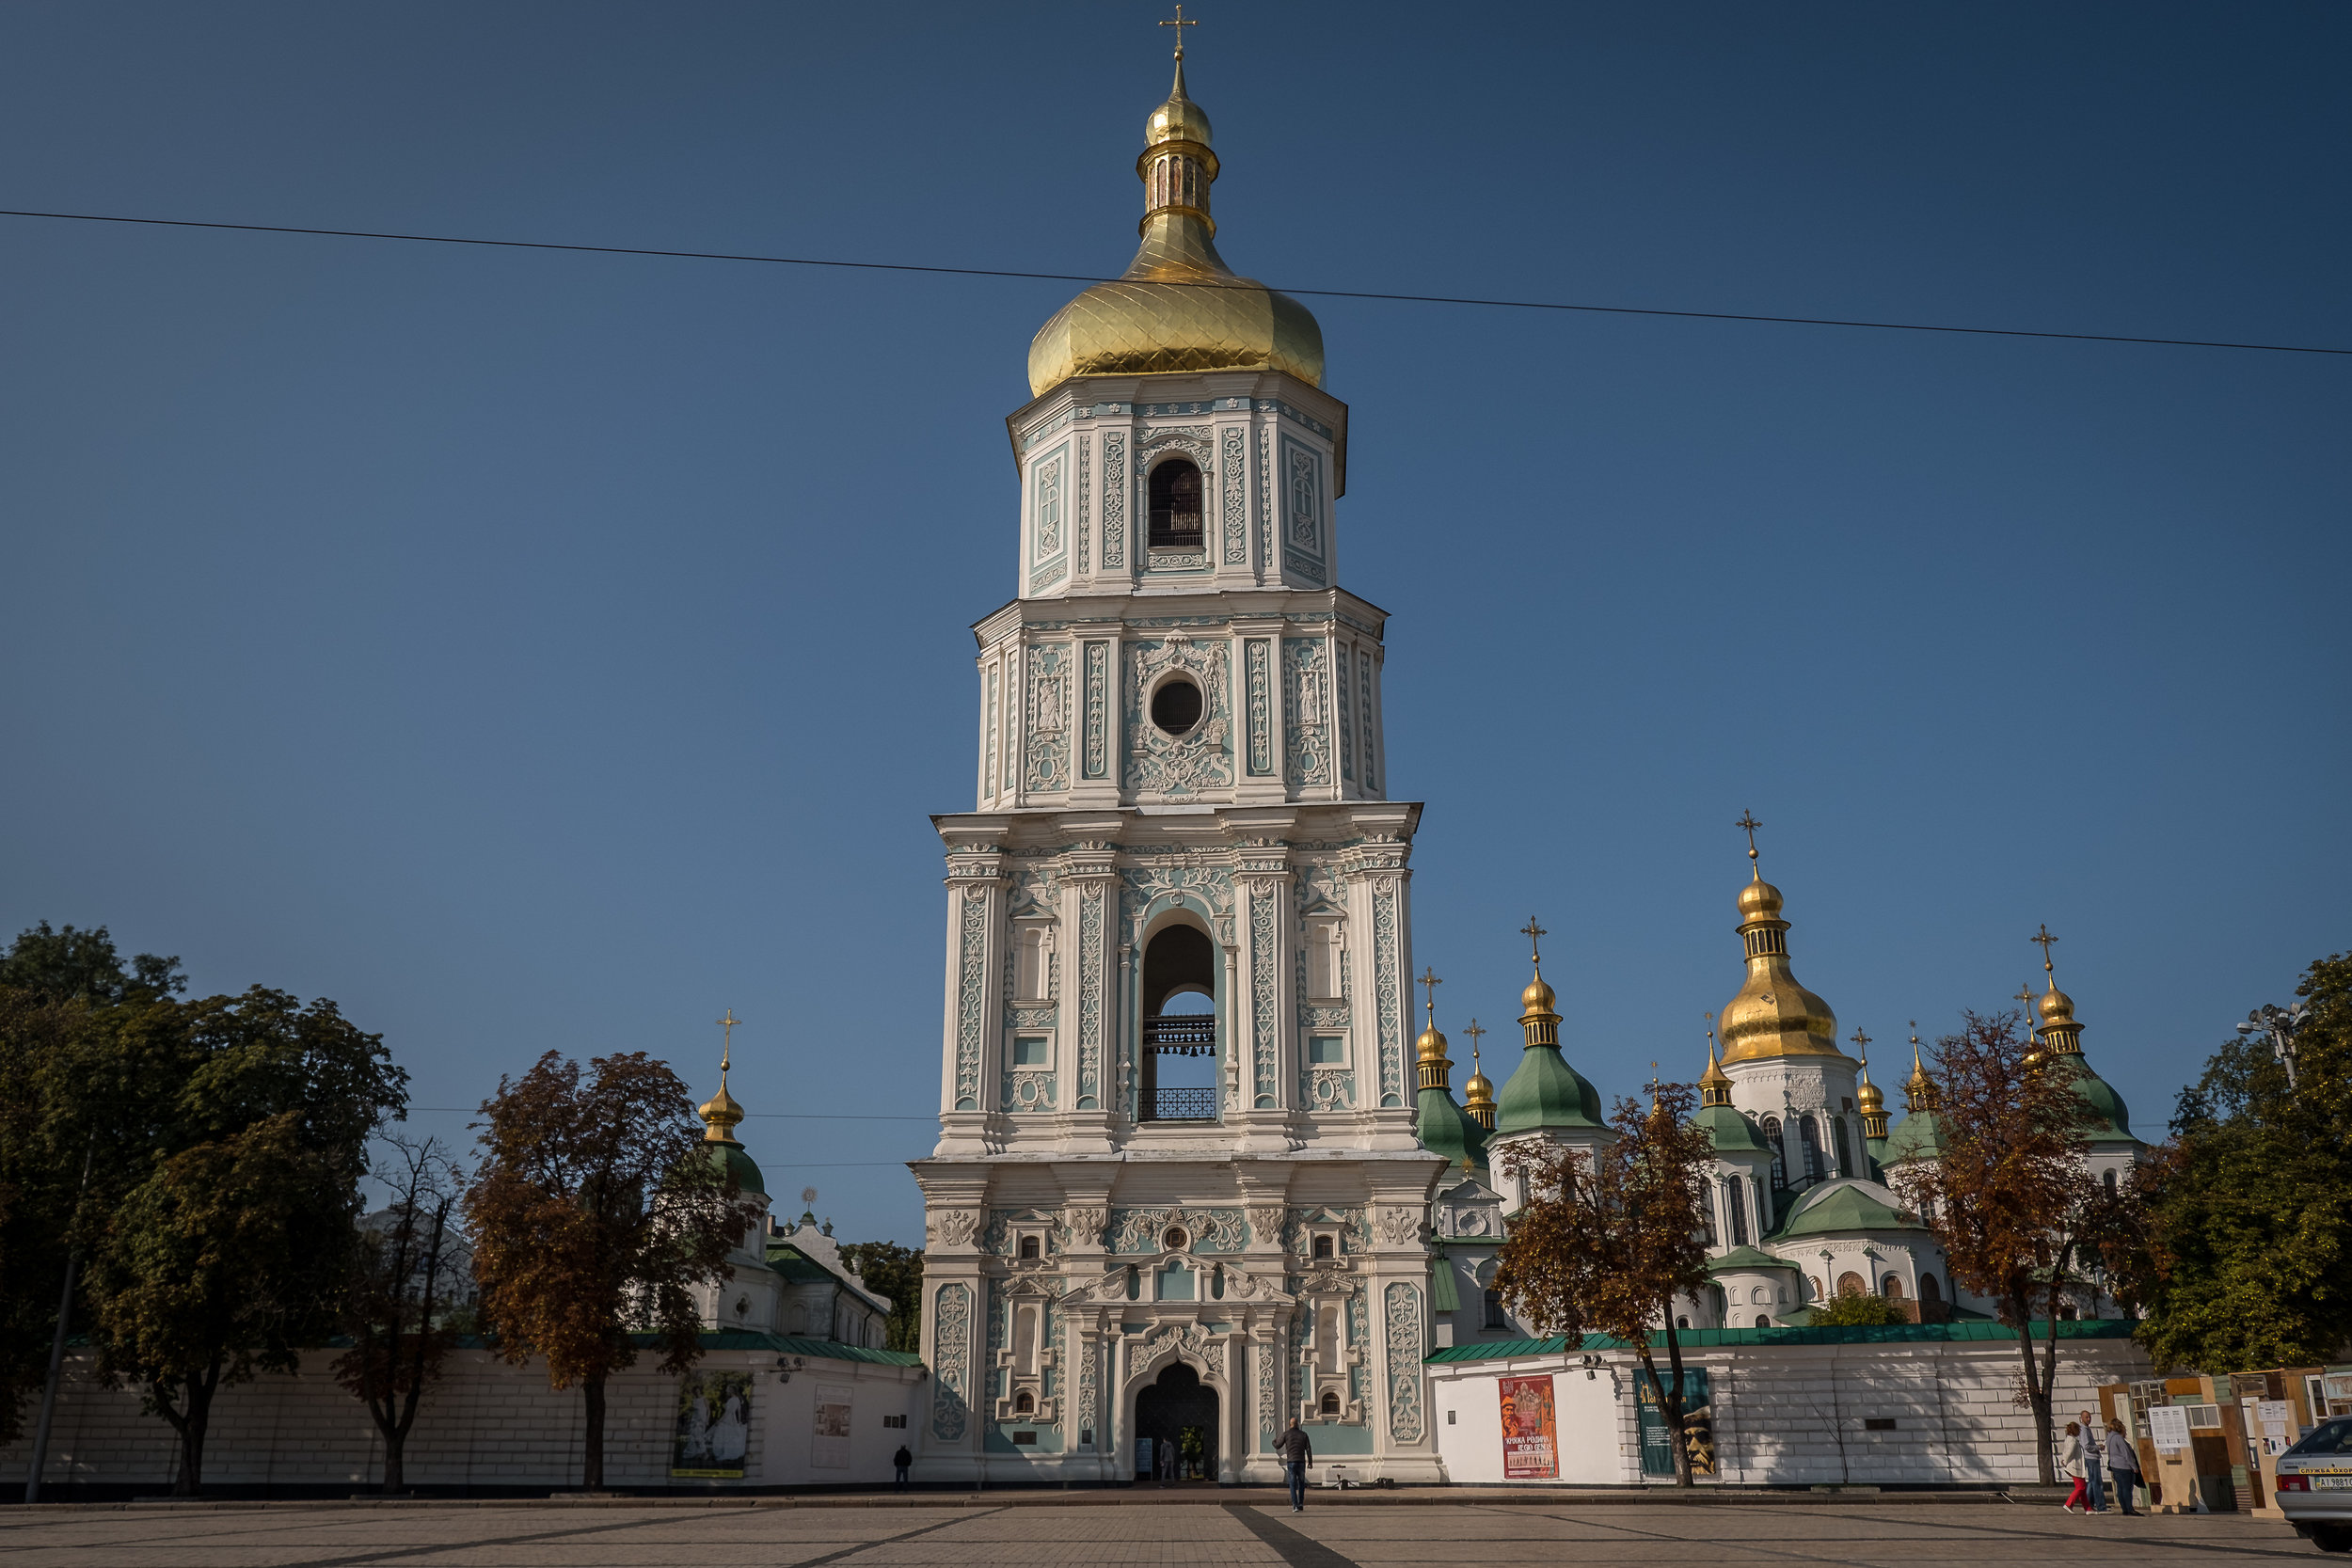 St. Sophia's Cathedral's belltower